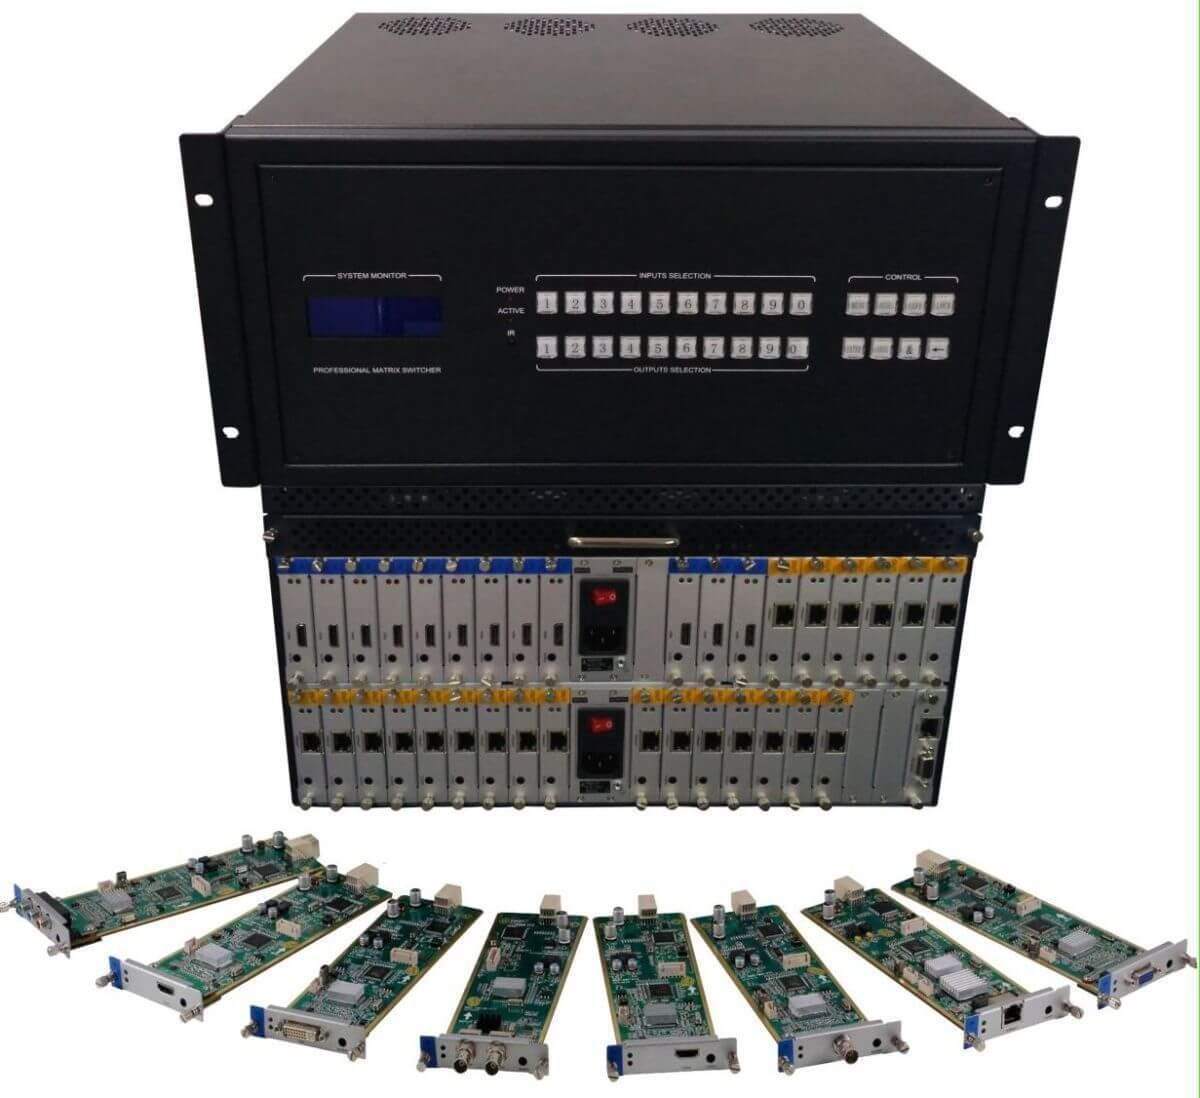 12x32 HDMI Matrix Switcher with Video Wall Processor